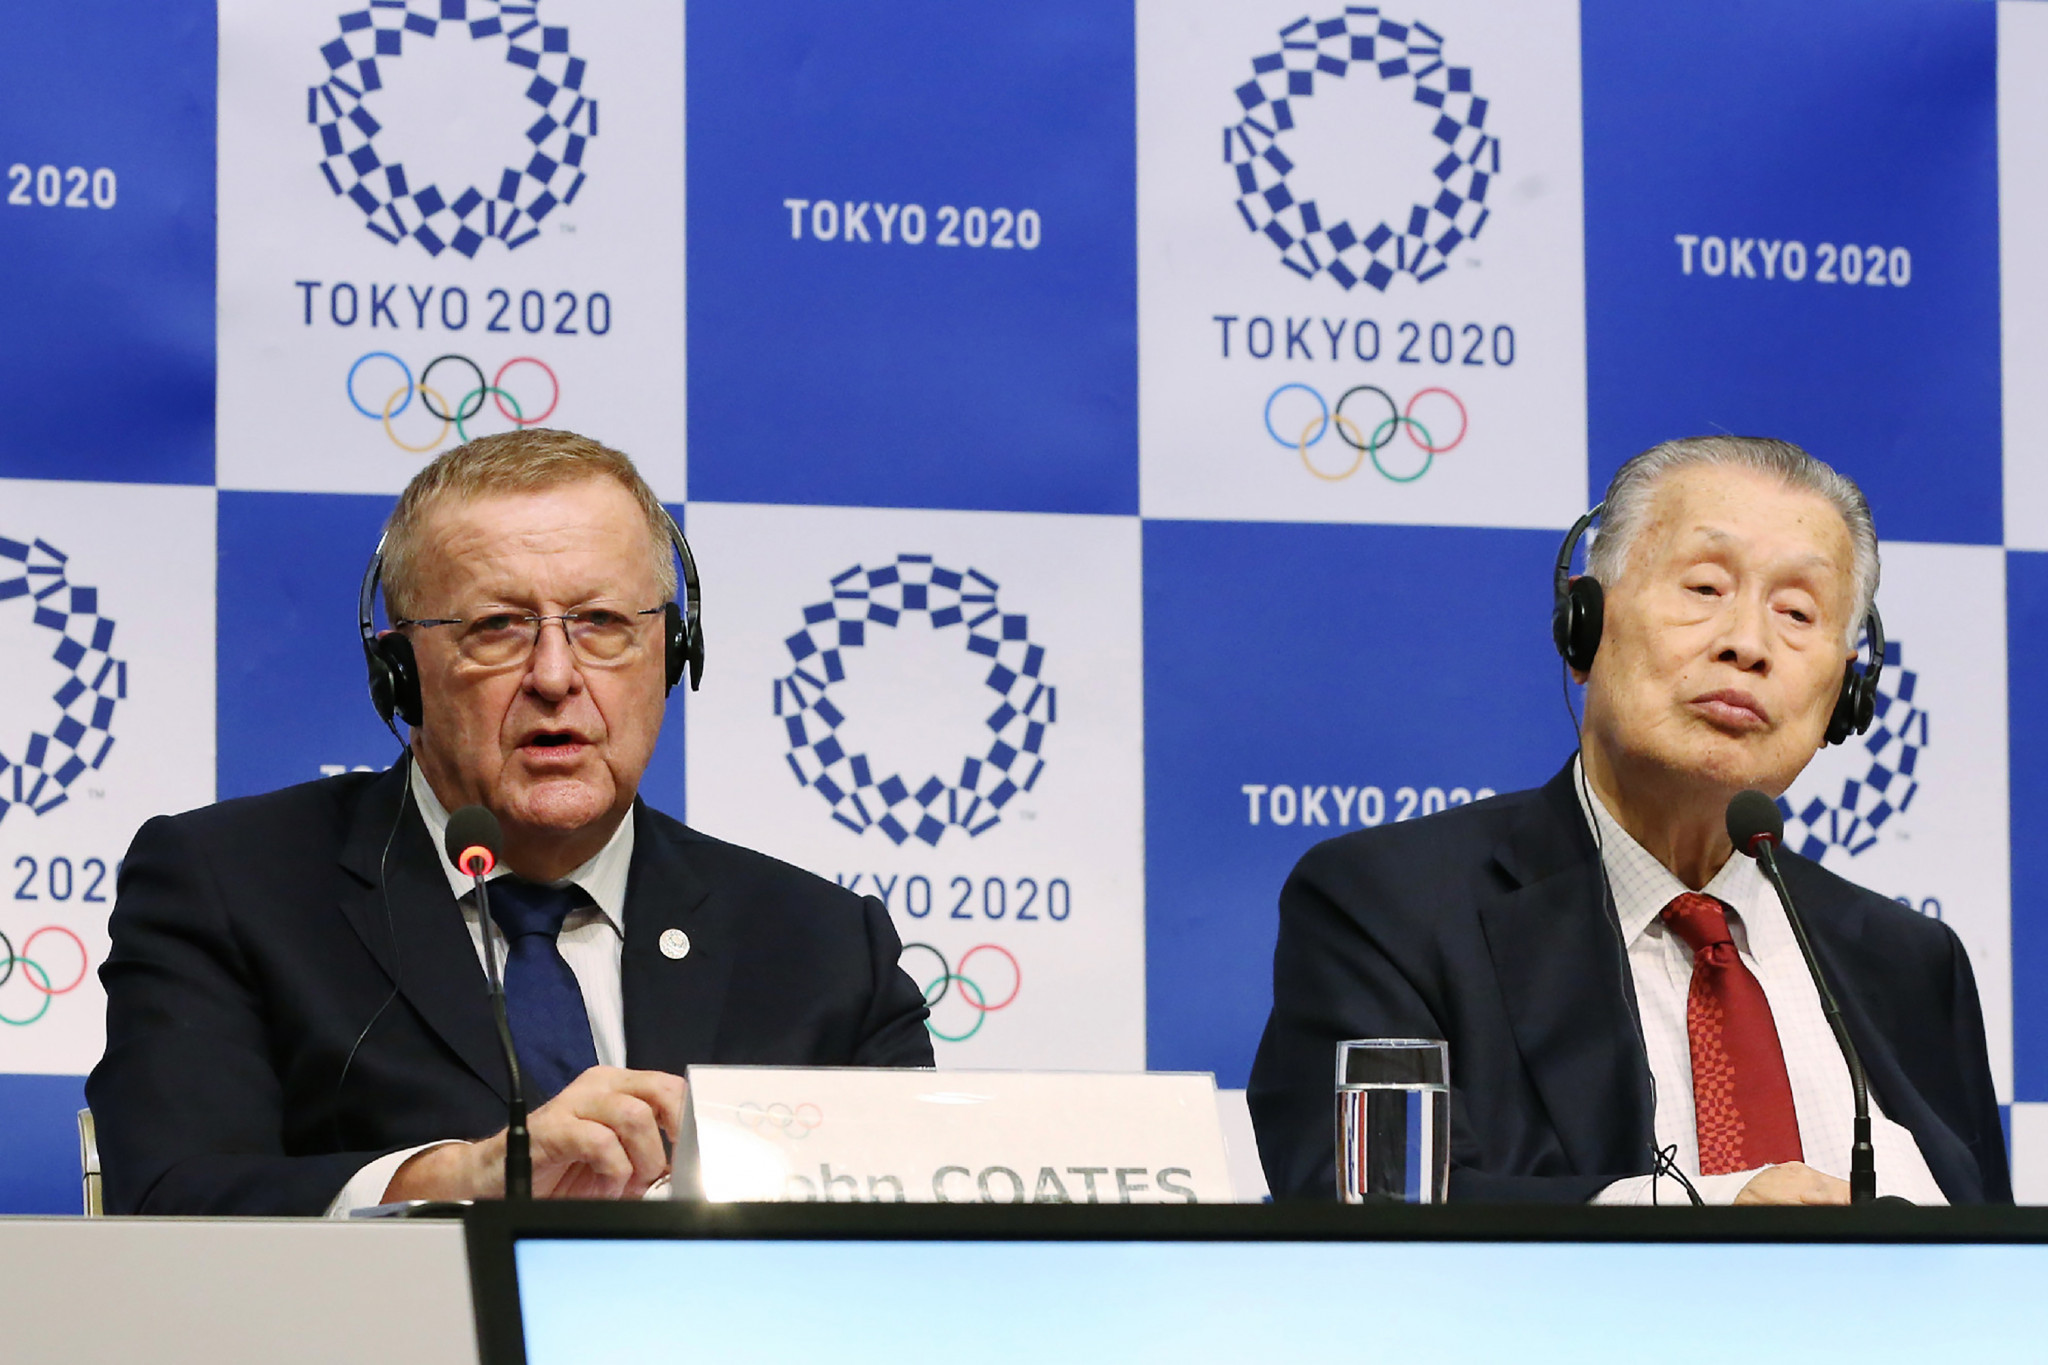 IOC Coordination Commission chair John Coates insisted Tokyo 2020 will not be impacted by the freeze in planning for the boxing event ©Getty Images